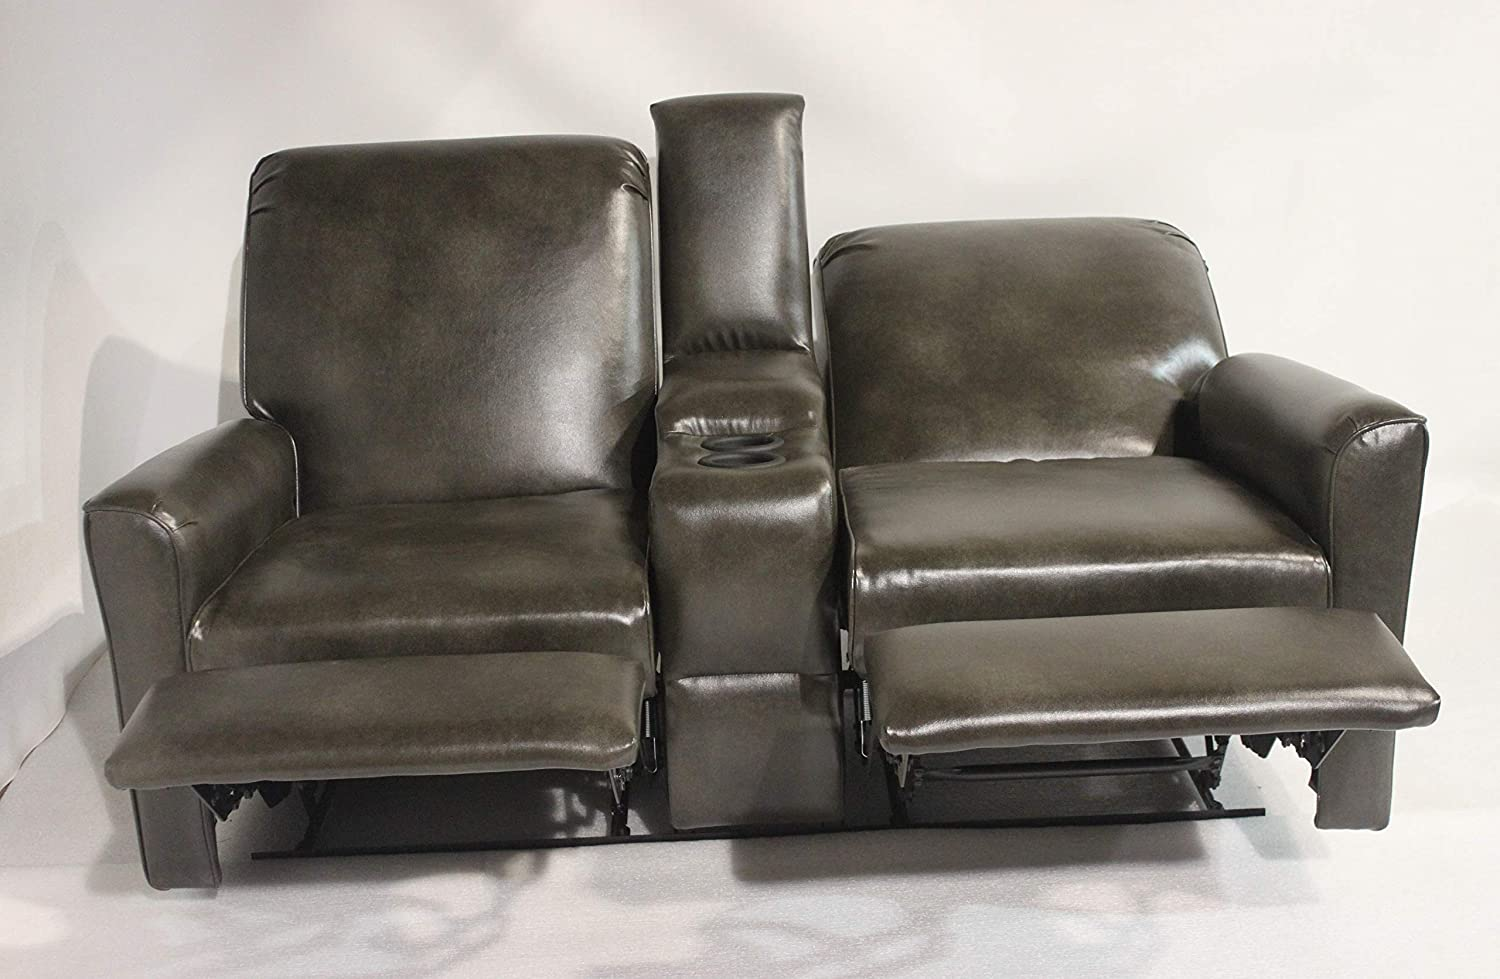 Remarkable Amazon Com La Z Boy 65 Rv Camper Double Recliner Couch Caraccident5 Cool Chair Designs And Ideas Caraccident5Info